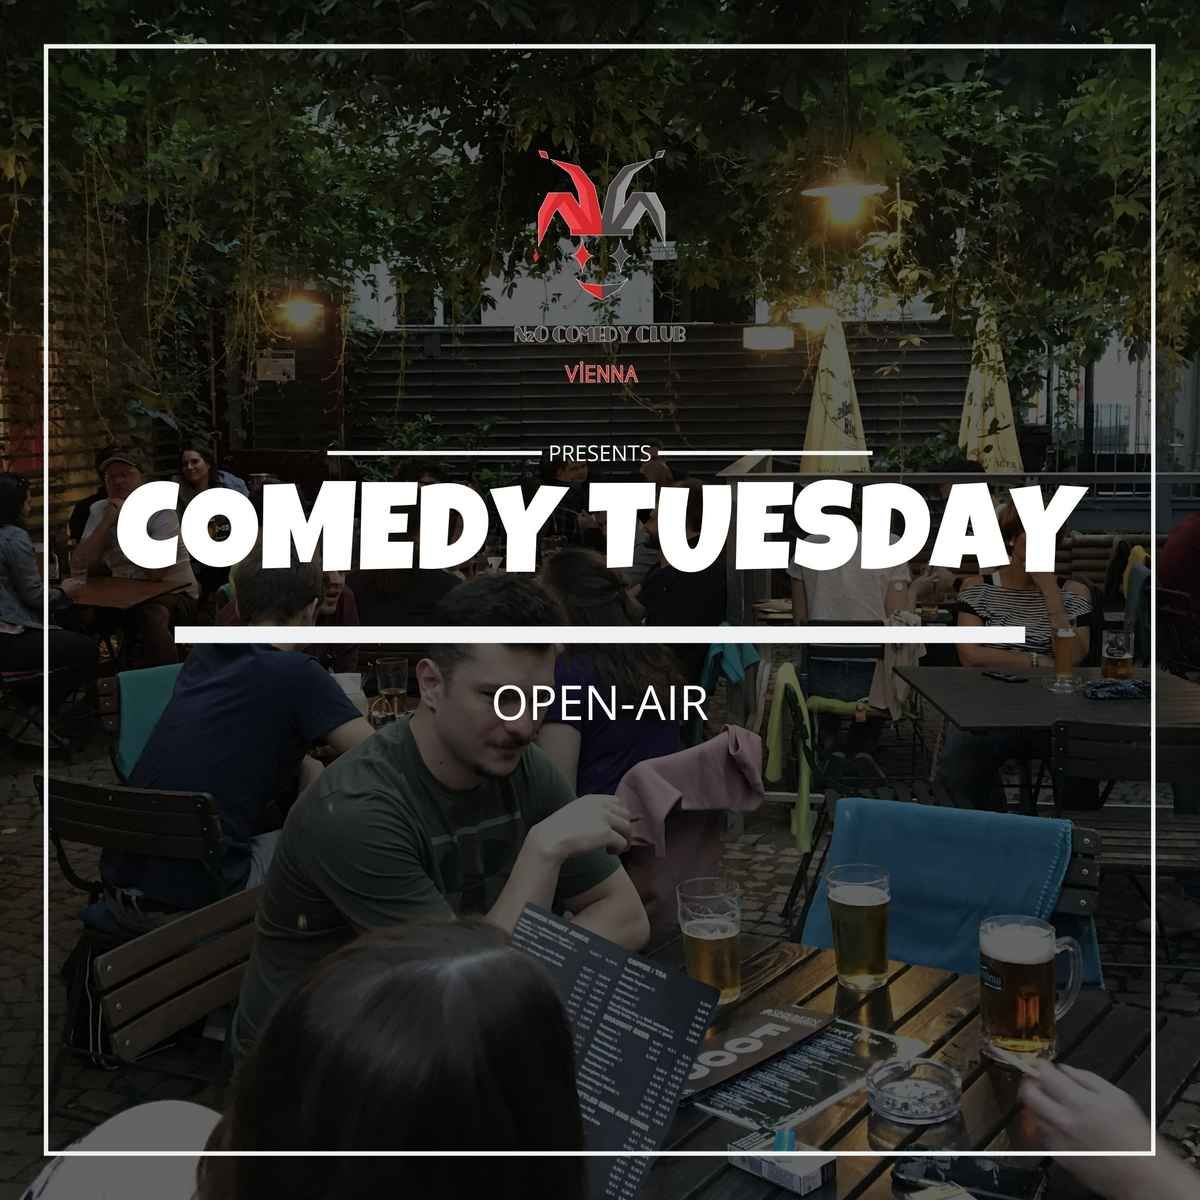 Comedy Tuesday Open-Air at Shebeen event impressions #2